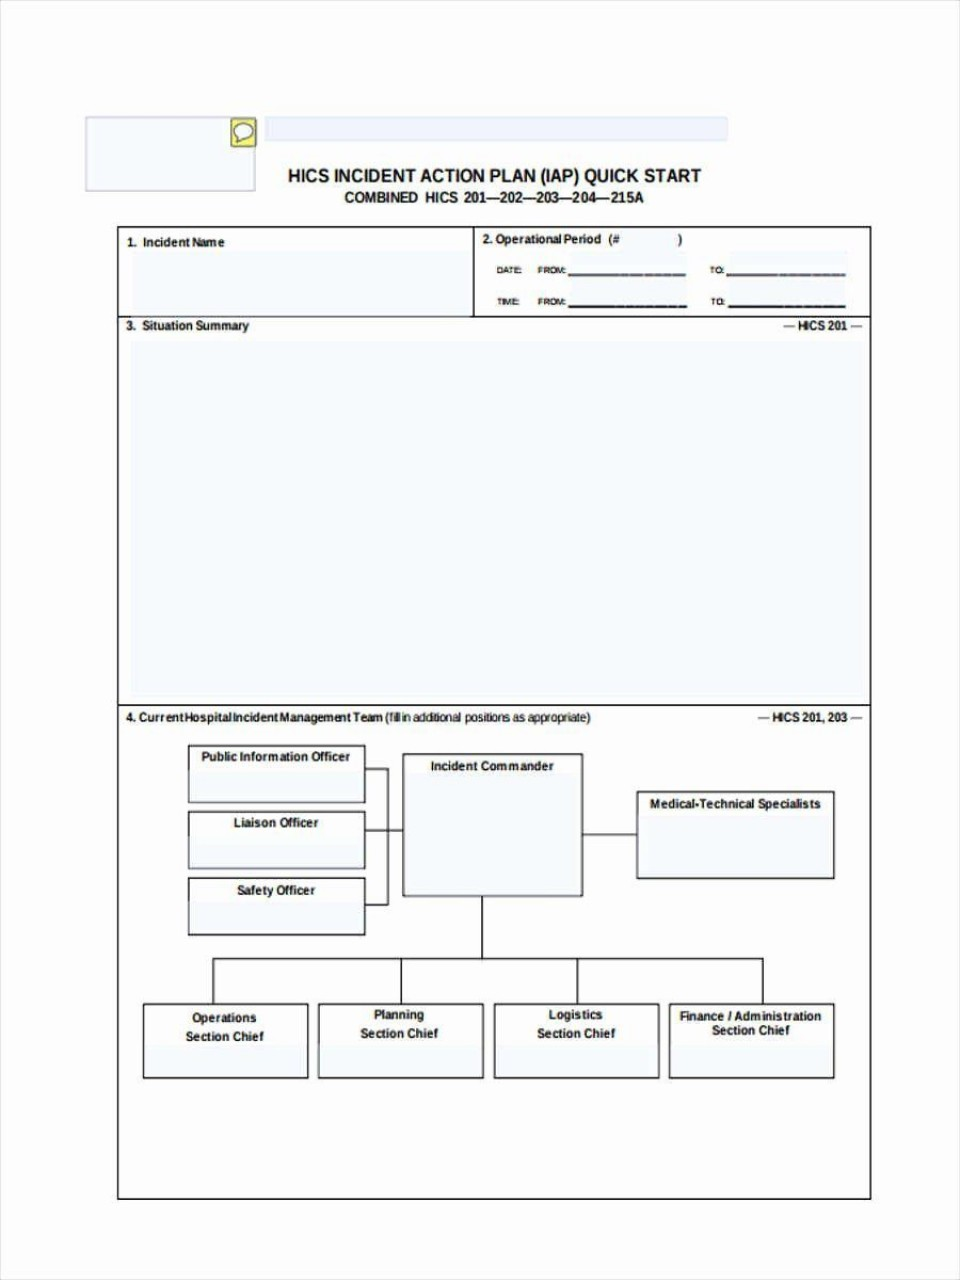 000 Shocking Incident Action Plan Template High Definition  Sample Philippine Fire Example Form 201960